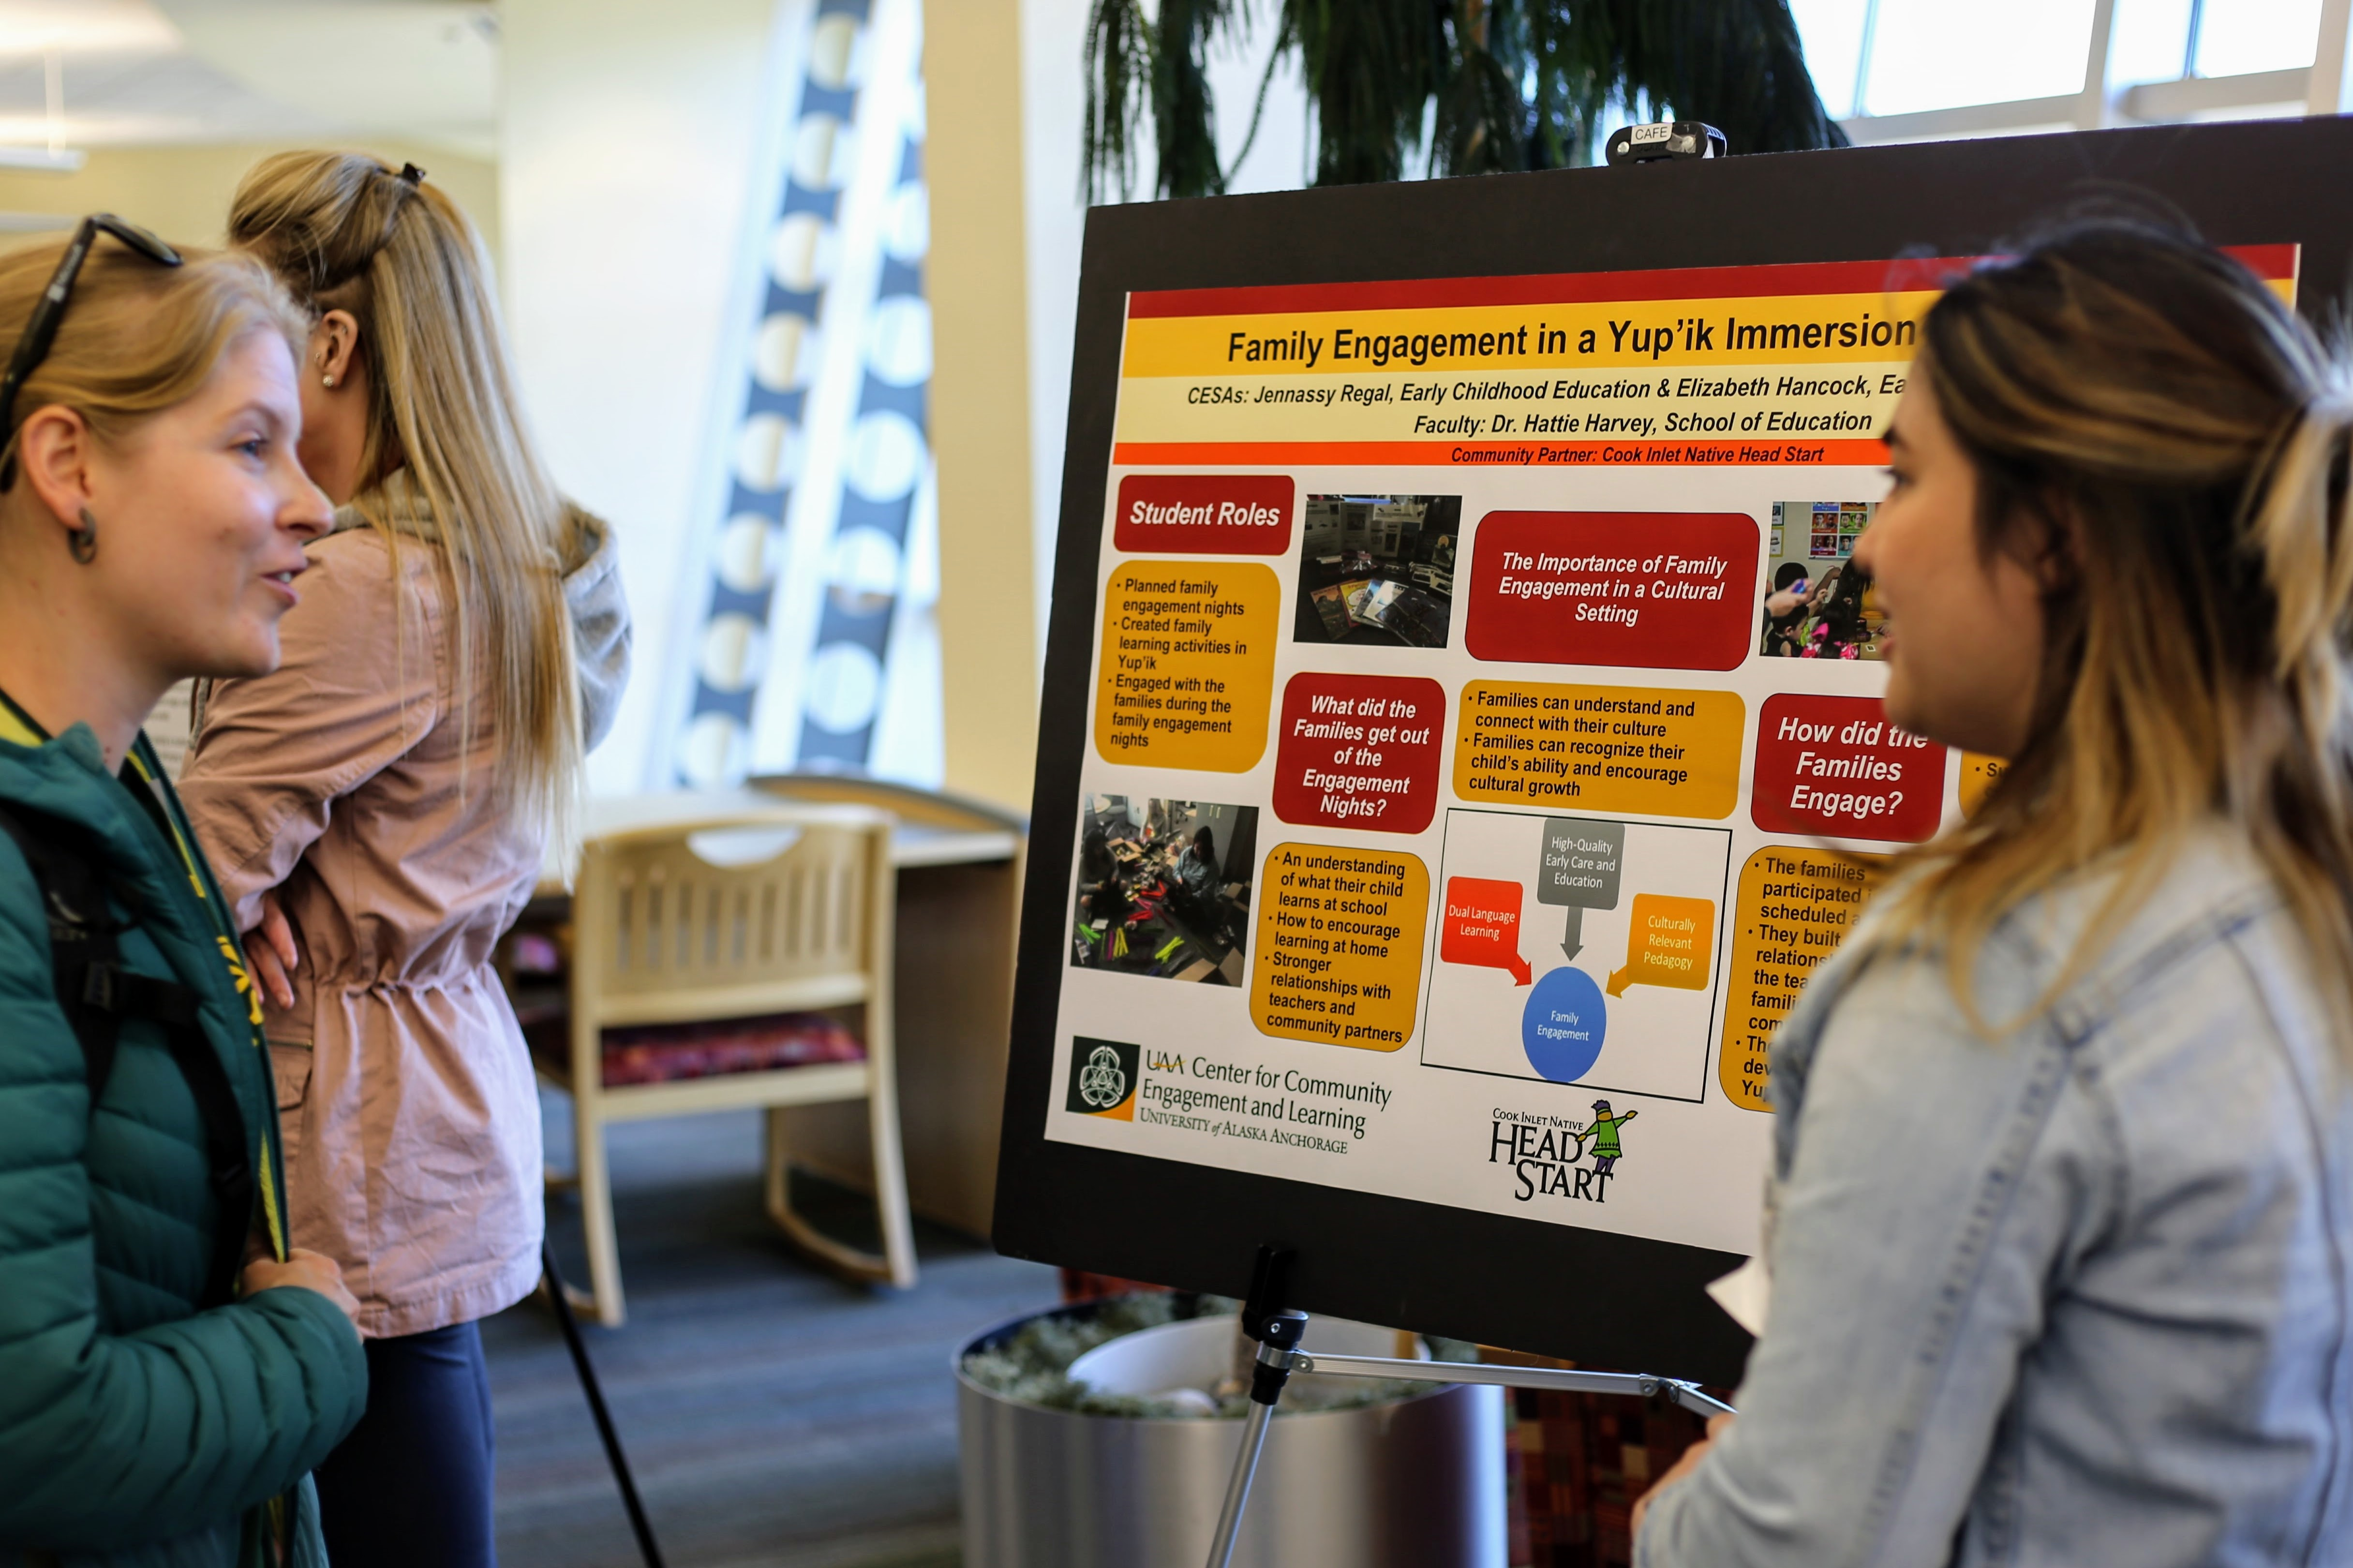 A blonde women with light sking talks to a student with dark hair standing next to her CESA poster.